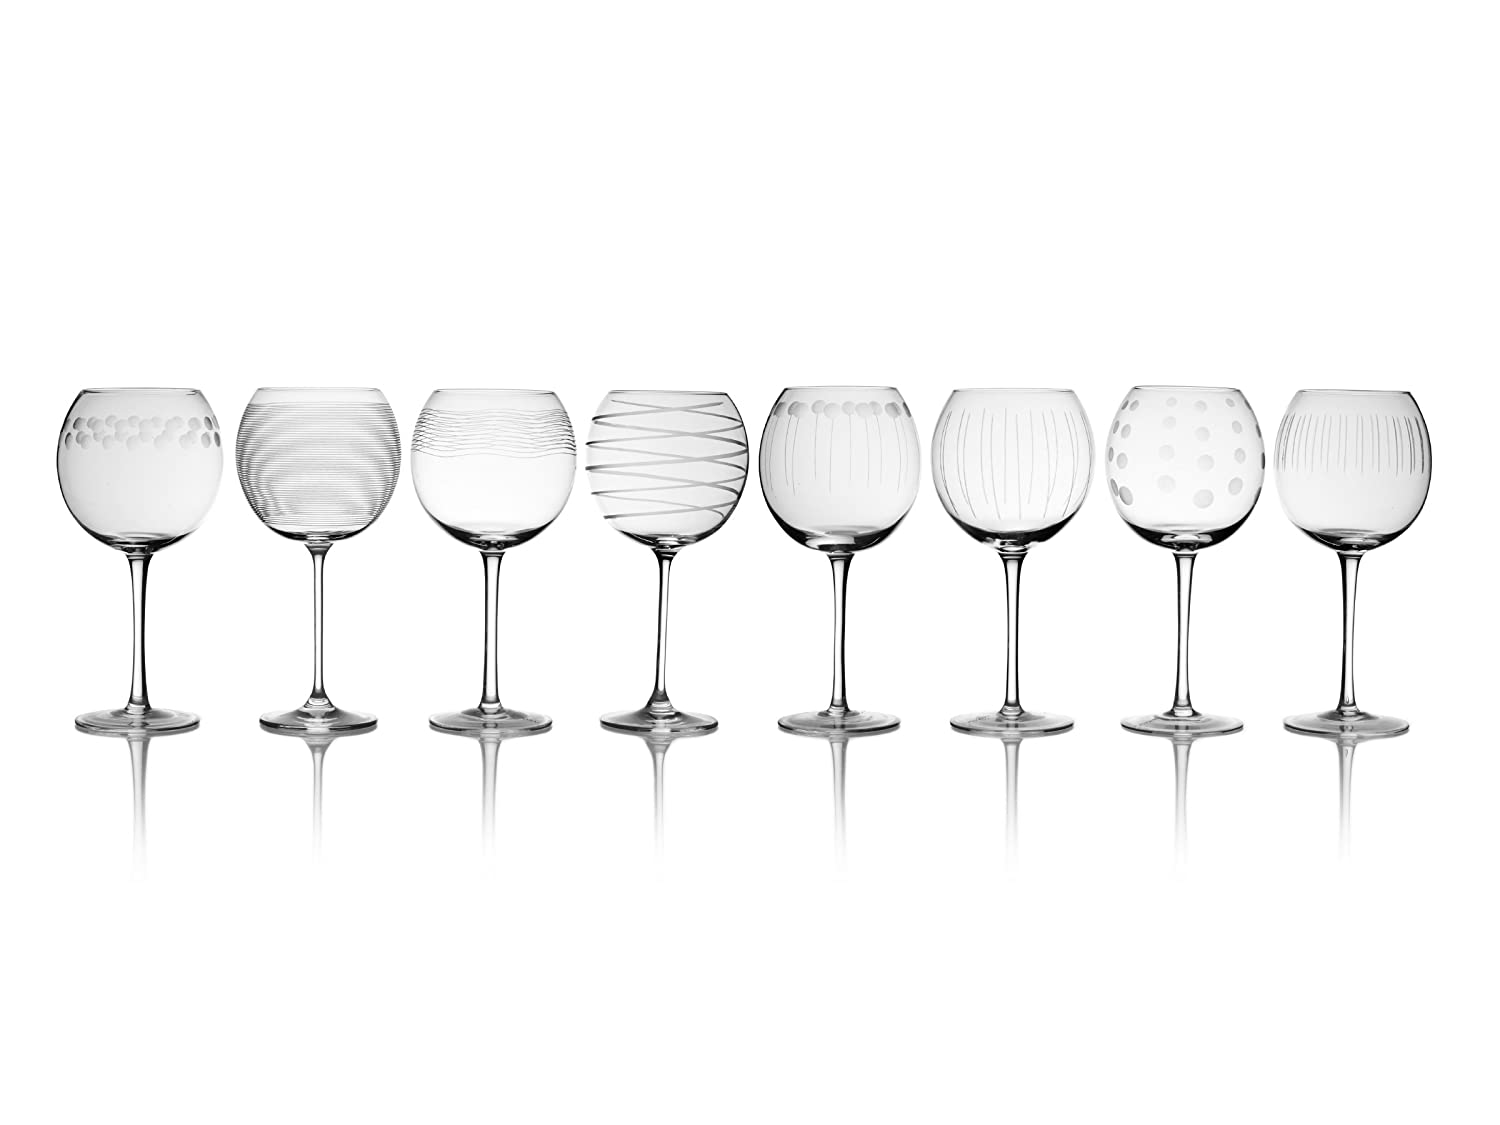 Mikasa Cheers Balloon Goblet Wine Glass, 24.5-Ounce, Set of 8 5117425